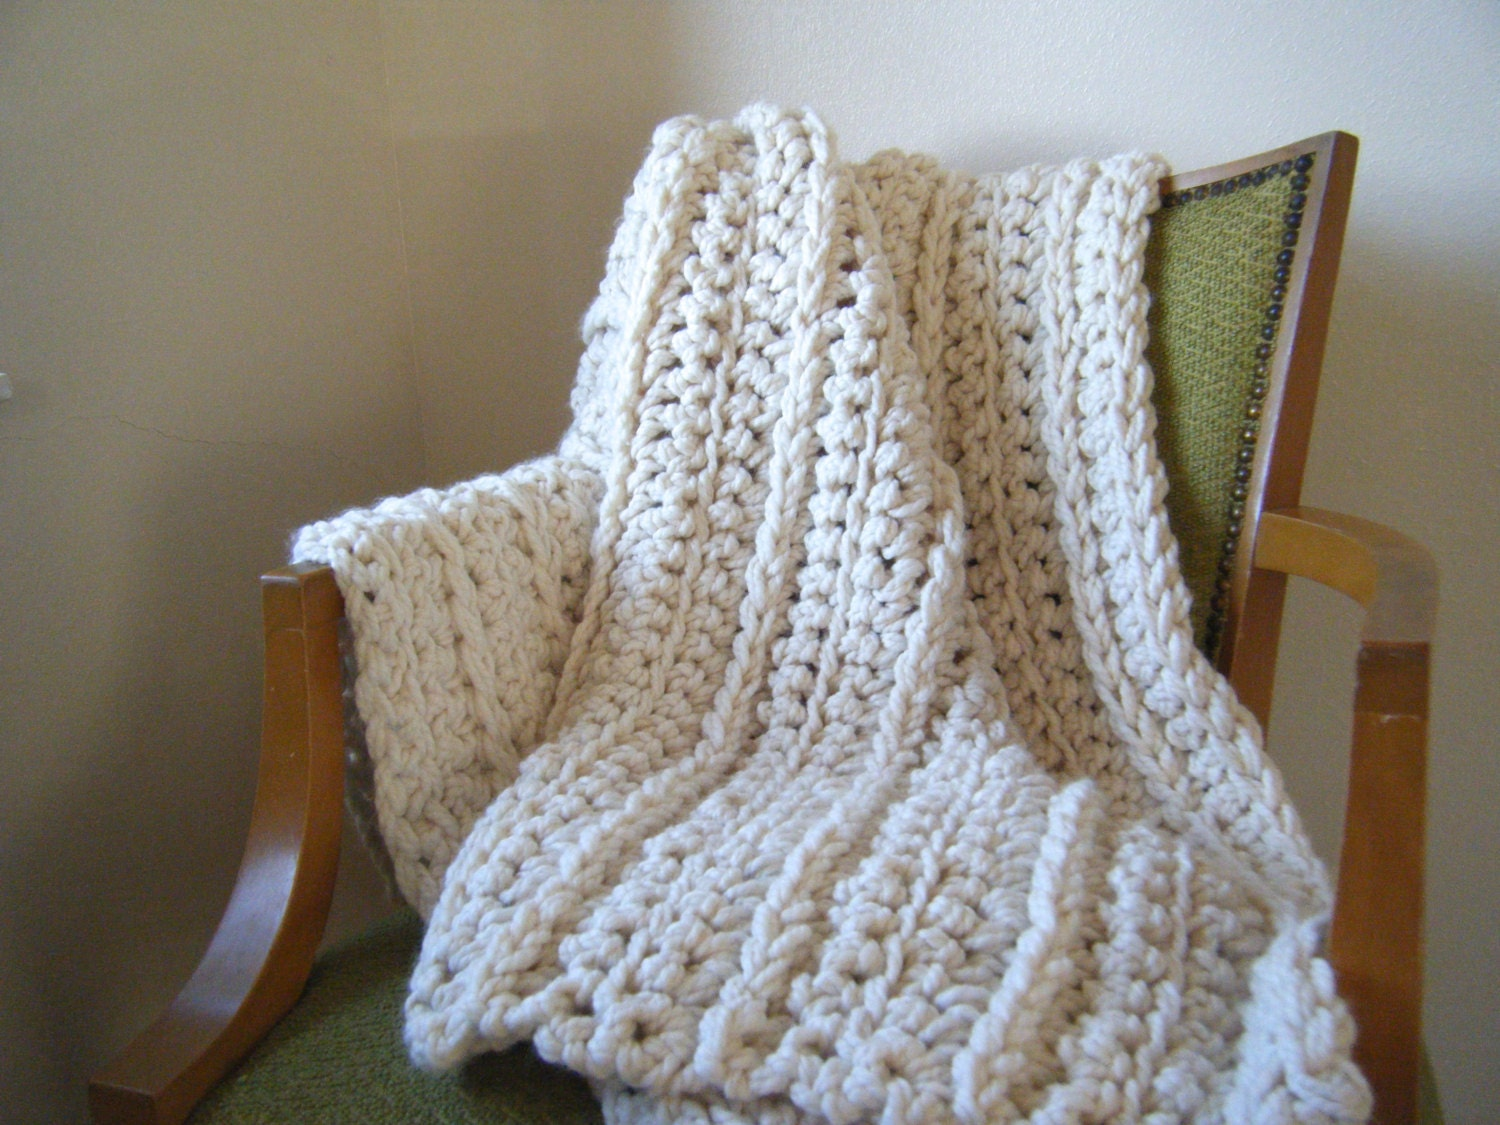 Crochet Pattern For Bulky Yarn Blanket : DIY Crochet Pattern: Super chunky throw ivory cream